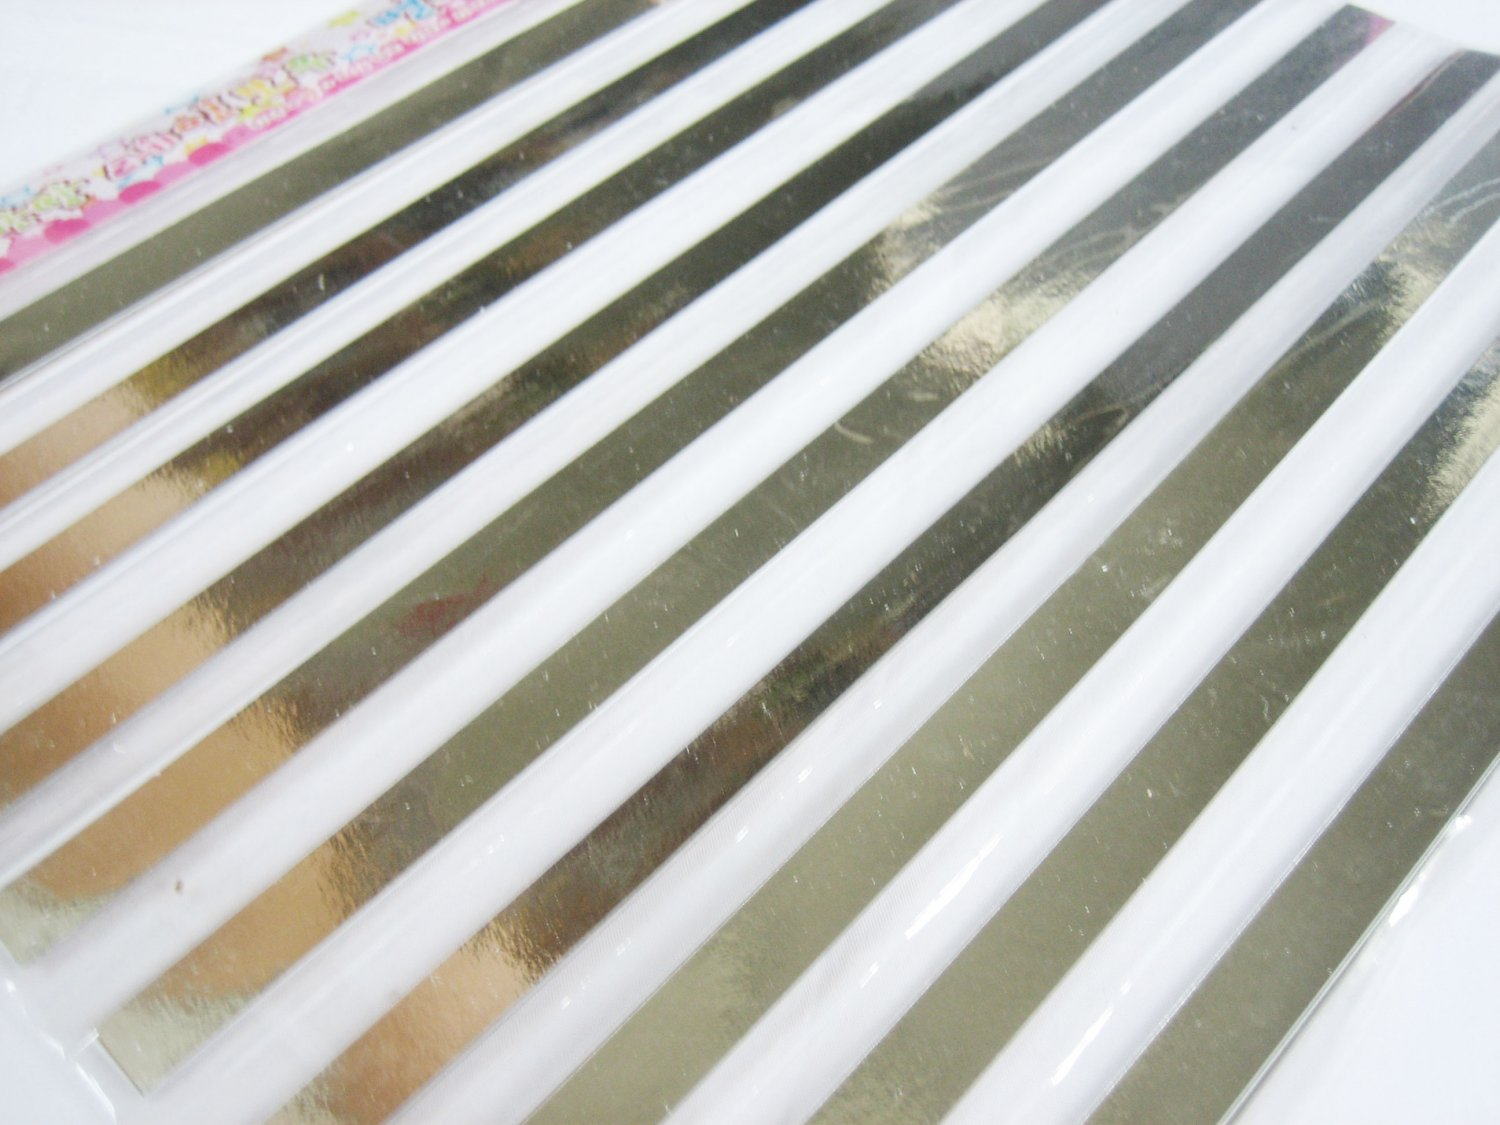 80pcs Shiny Silver Origami Lucky Star Paper Strips 80A